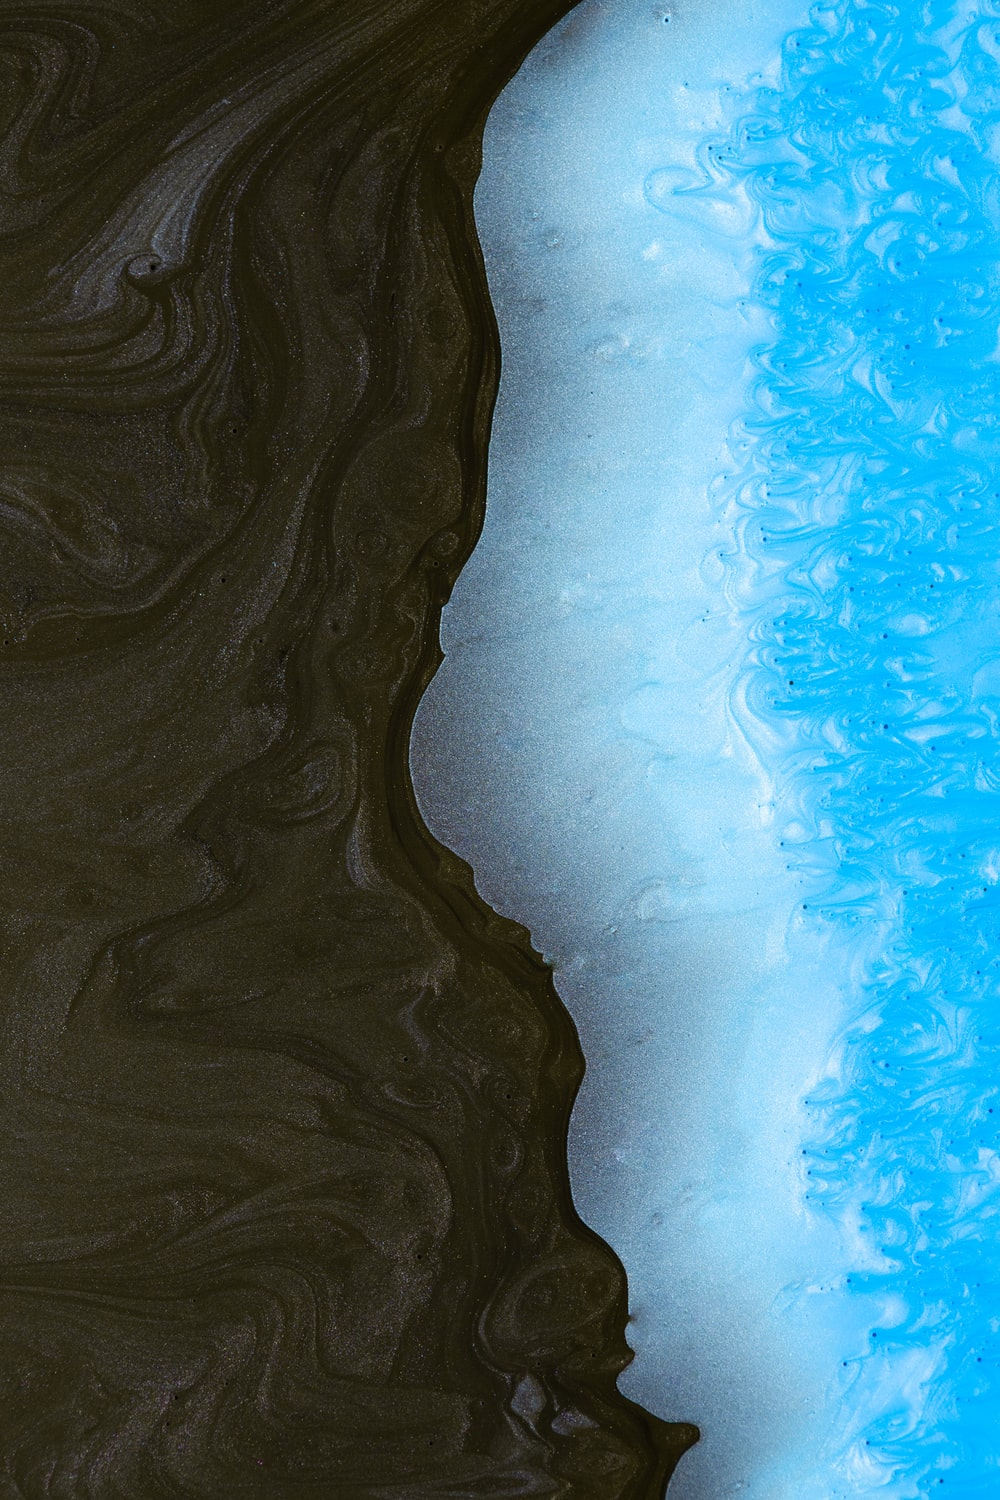 brown sand with blue water